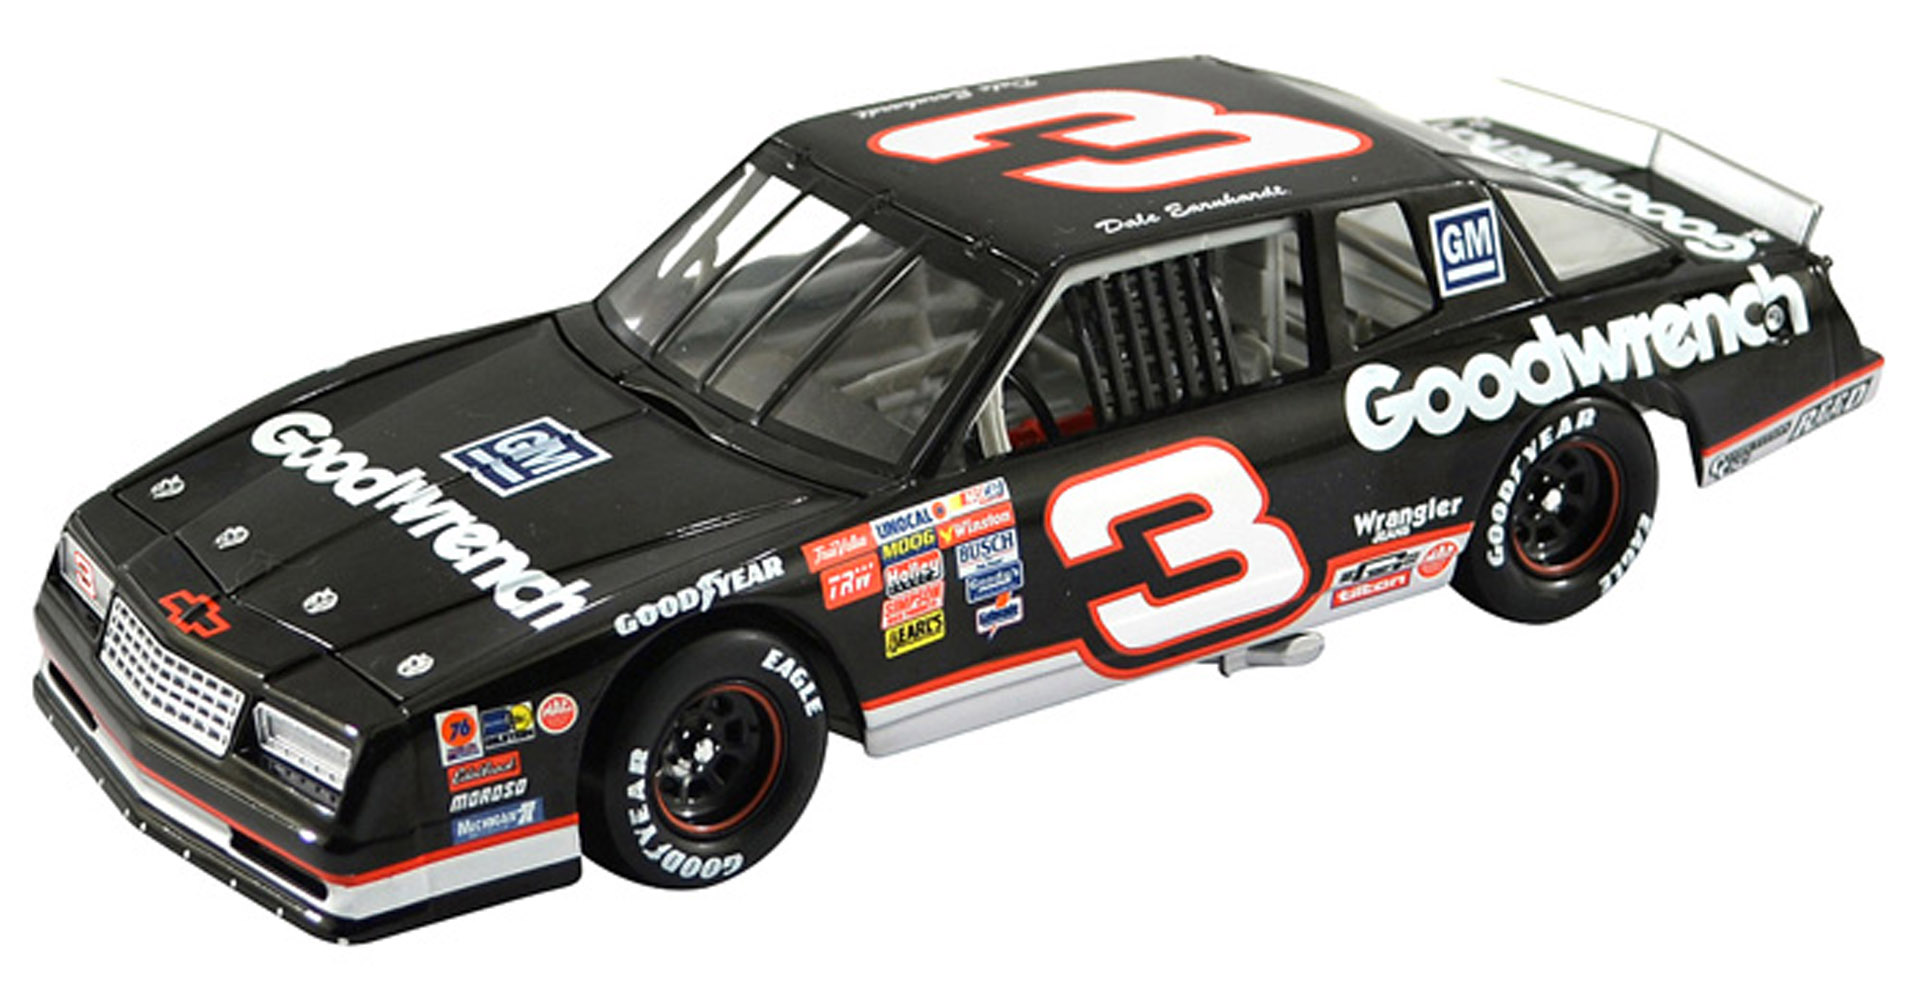 2012 Dale Earnhardt Sr #3 1989 Goodwrench Monte Carlo 1/24 Diecast Car.